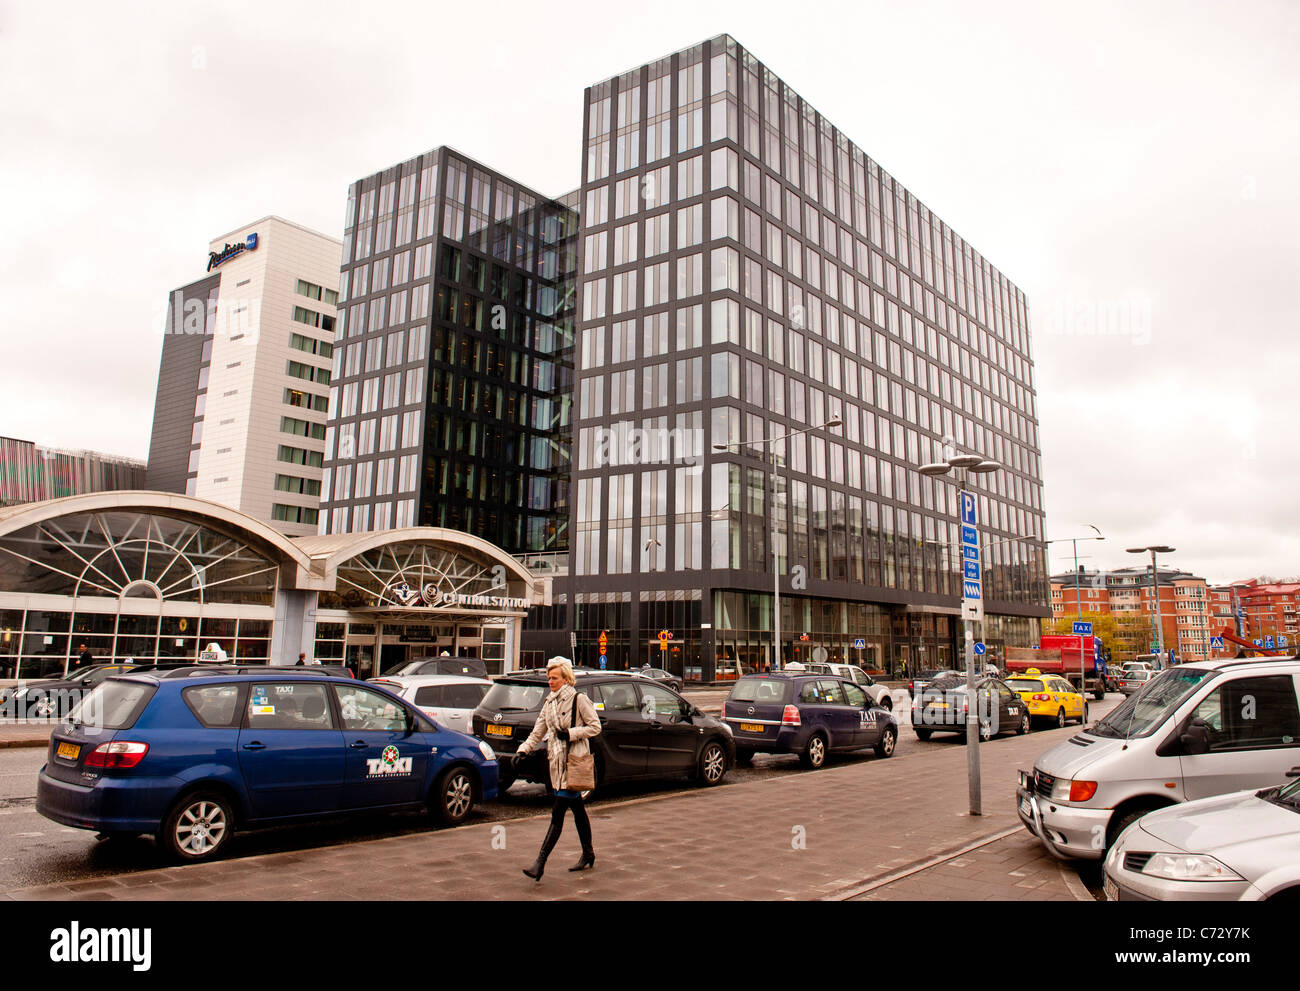 Stockholms new Waterfront Building and The Radison Blu Hotel both next door to the Stockholm Central railway station - Stock Image